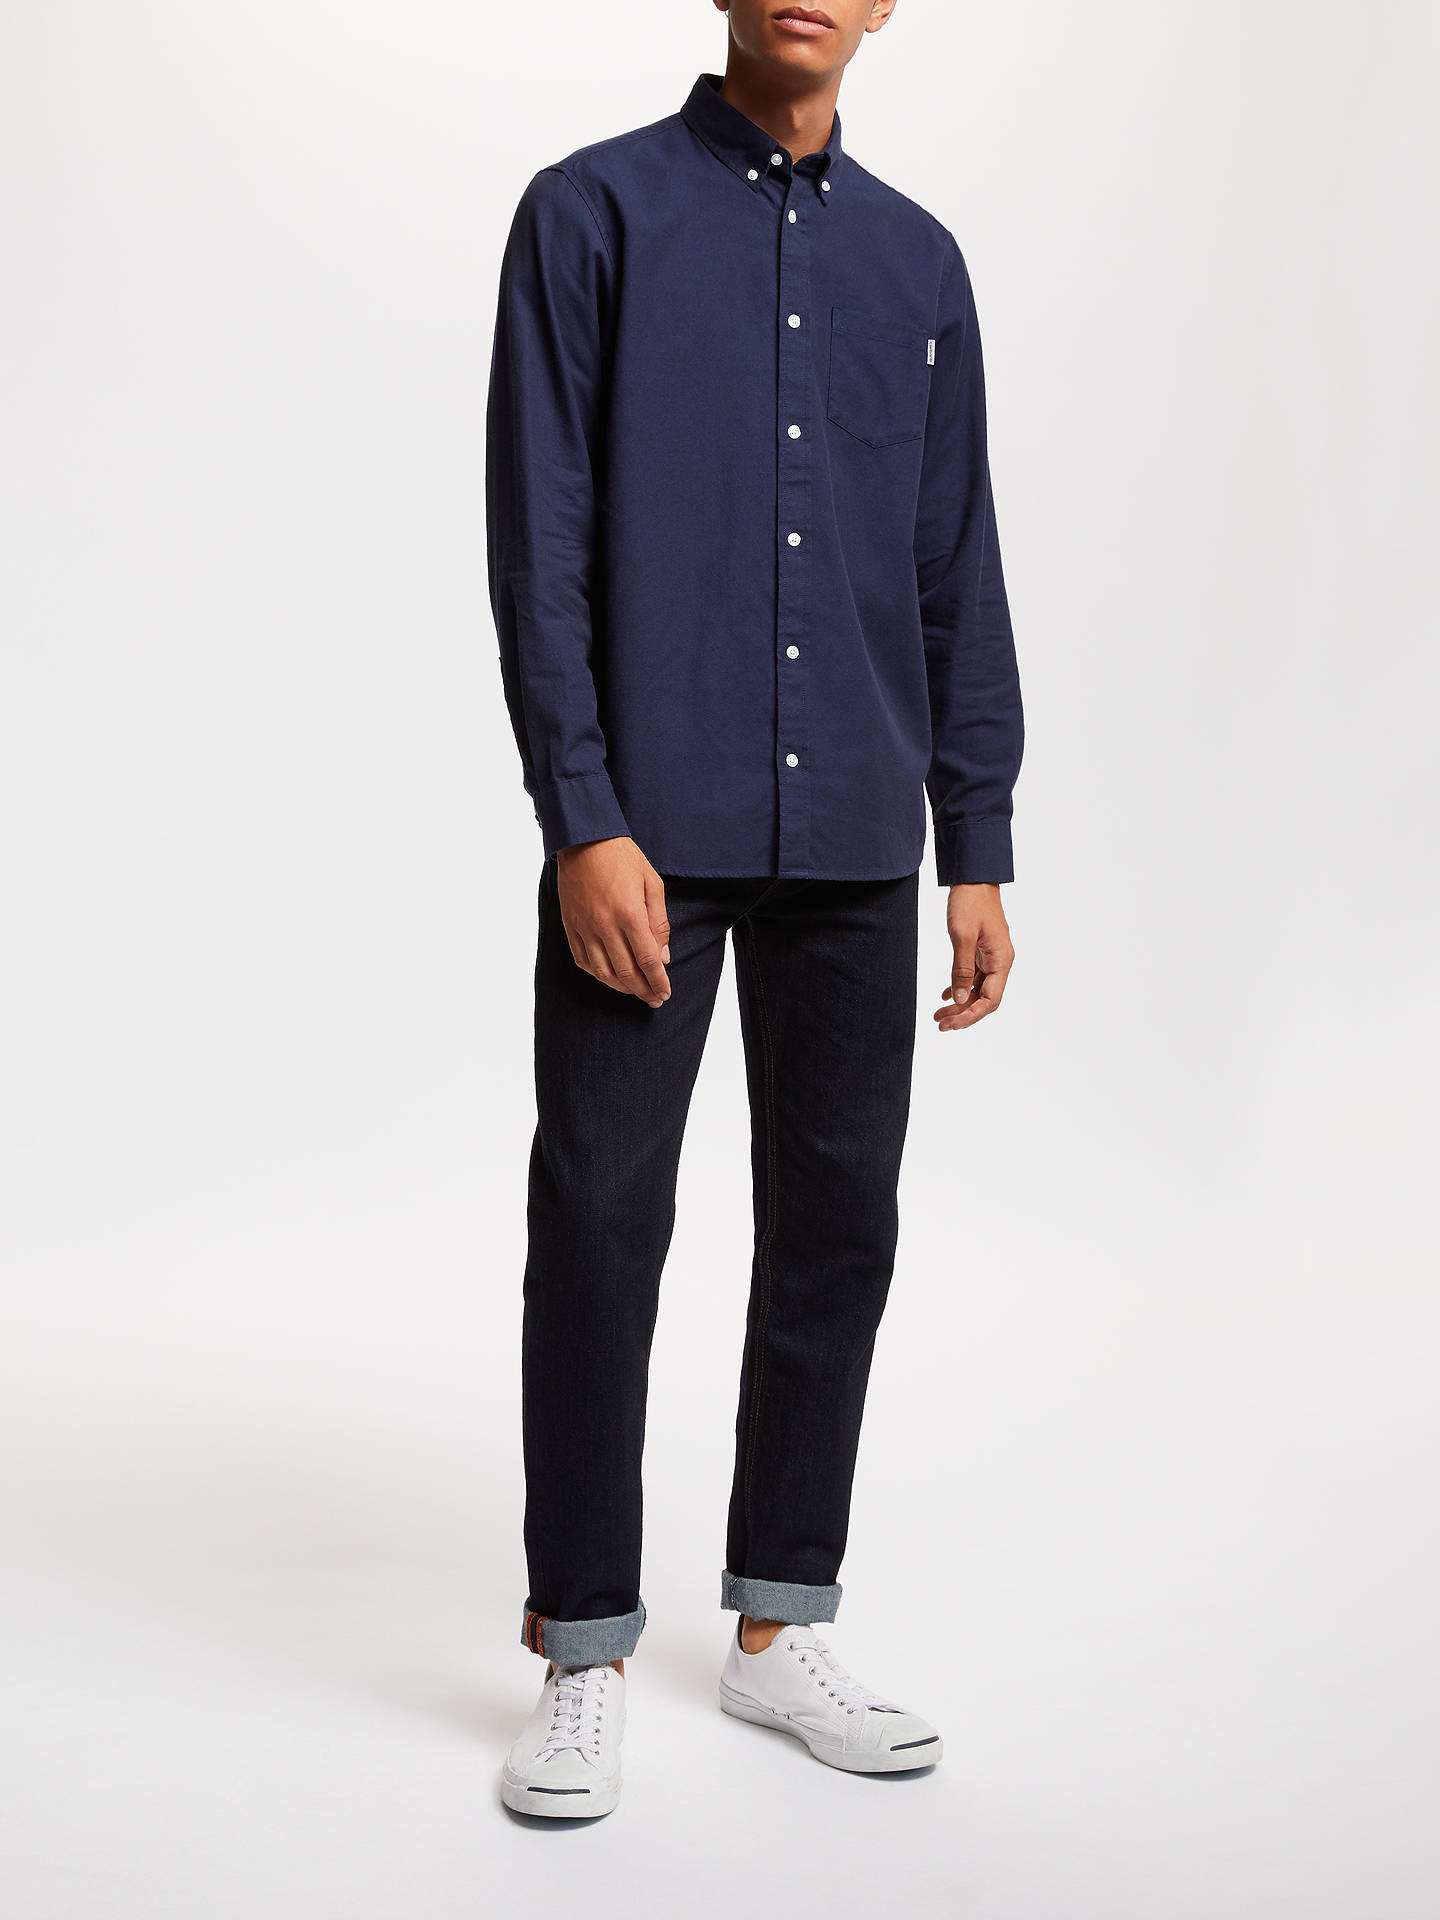 Buy Carhartt WIP Dalton Cotton Oxford Flannel Shirt, Dark Navy, XL Online at johnlewis.com